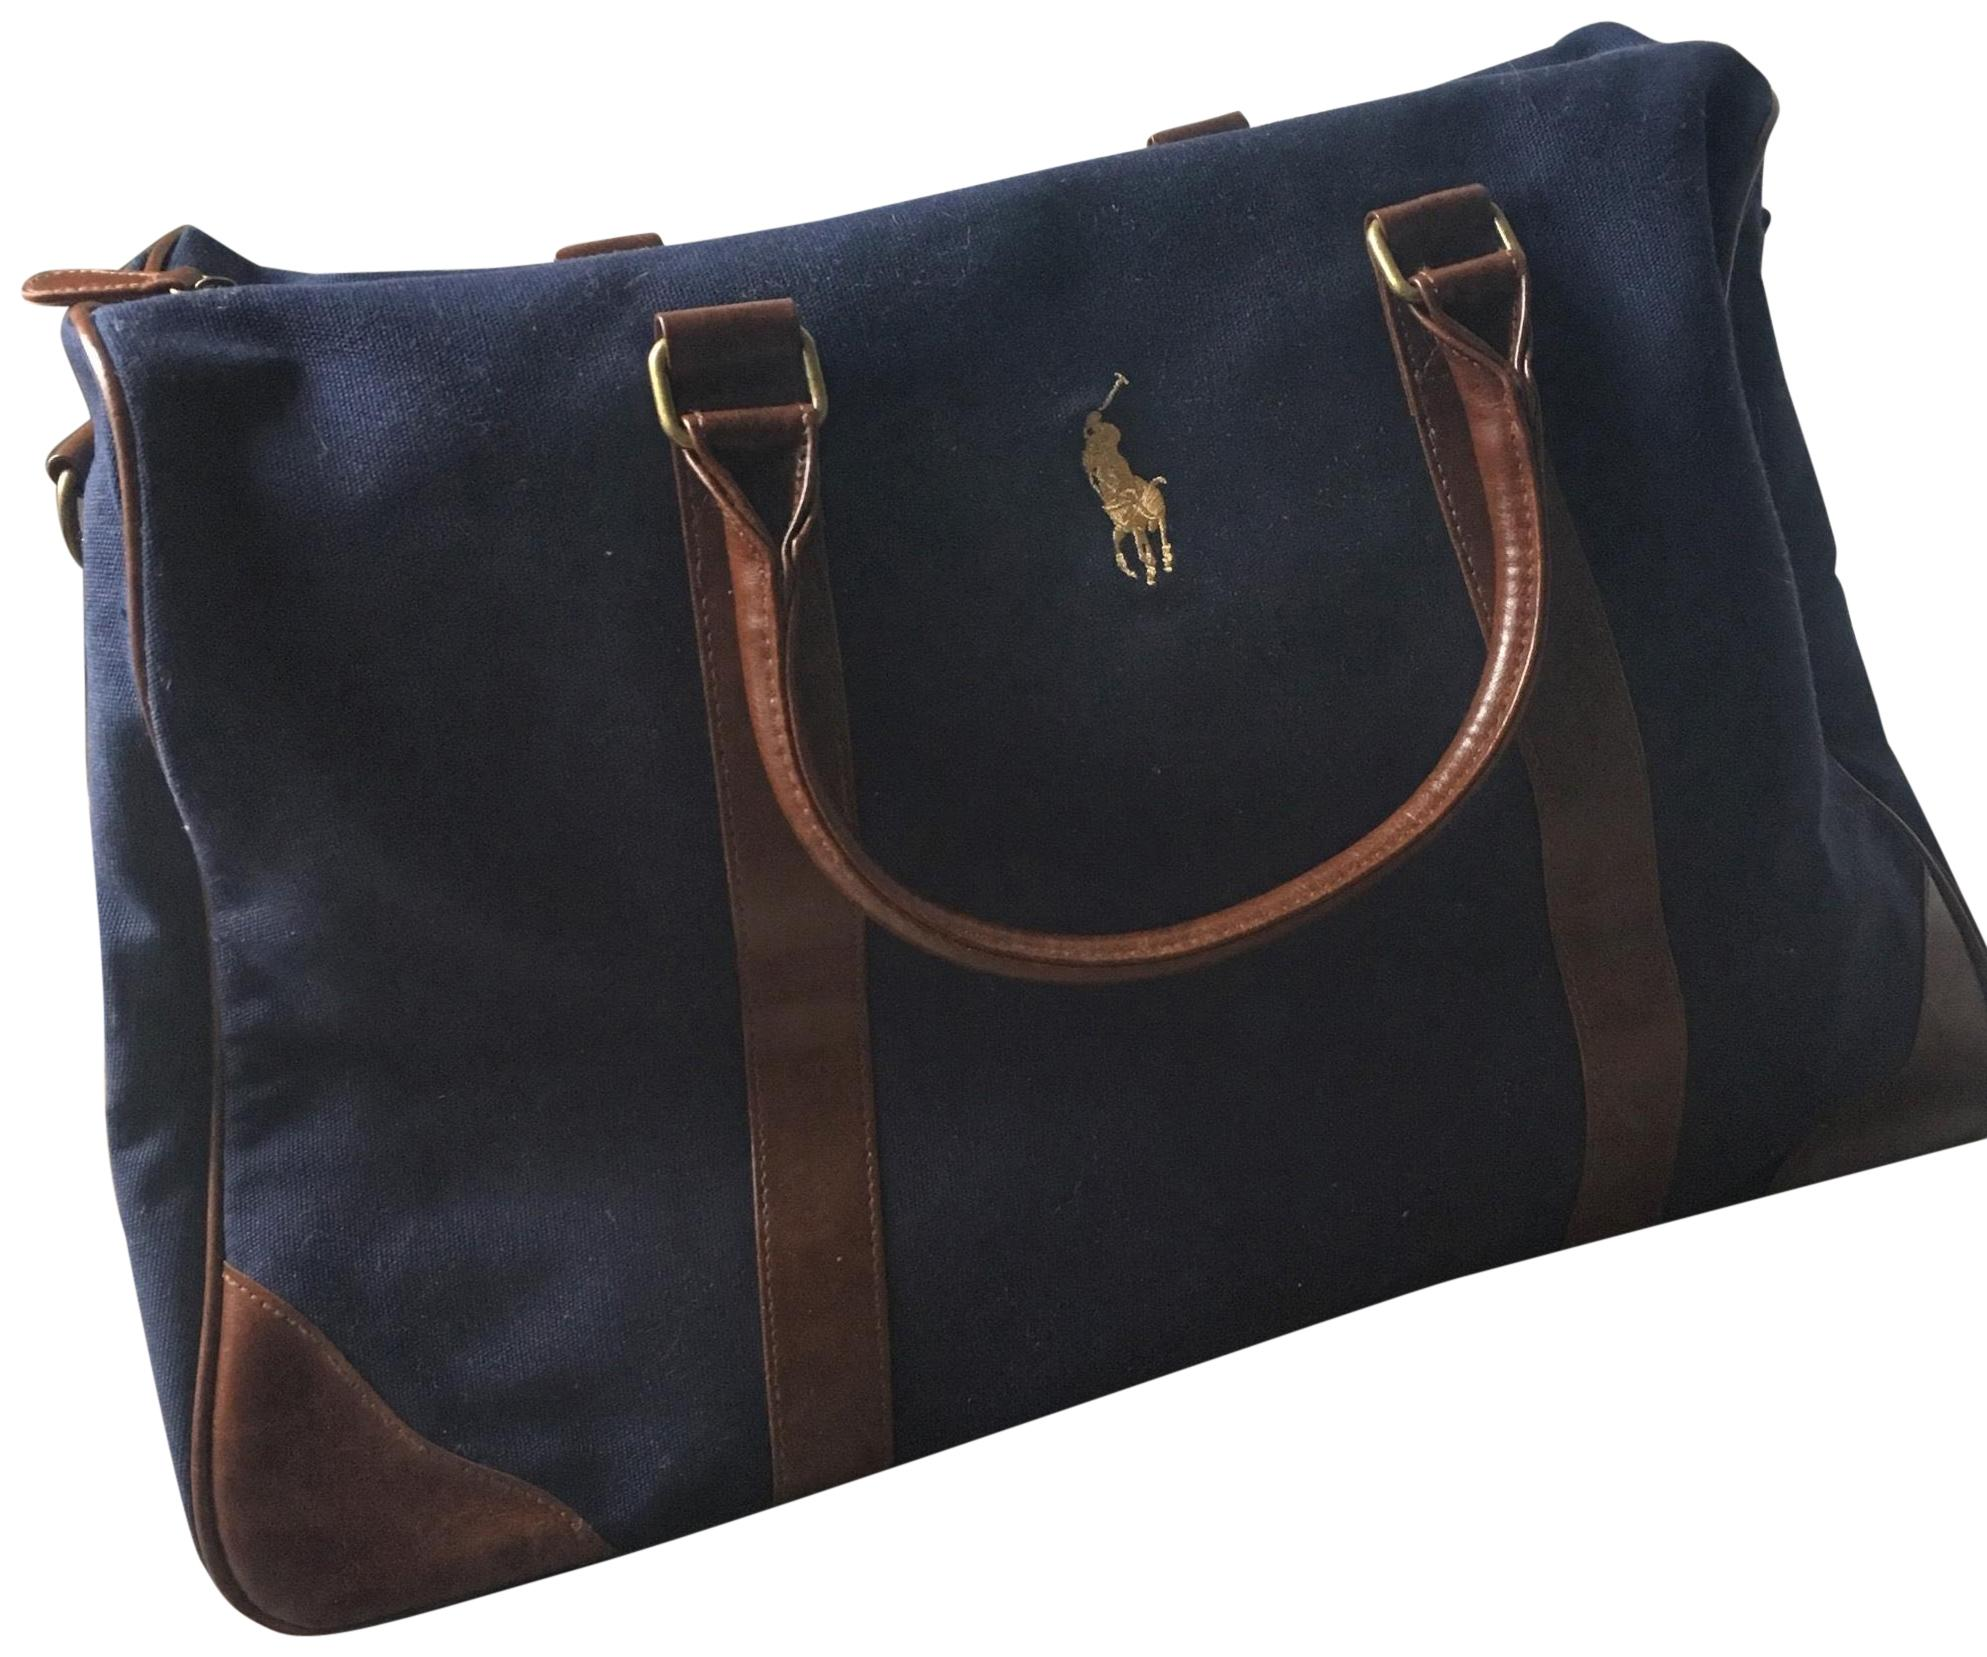 Polo Ralph Lauren navy/brown/gold Travel Bag ...